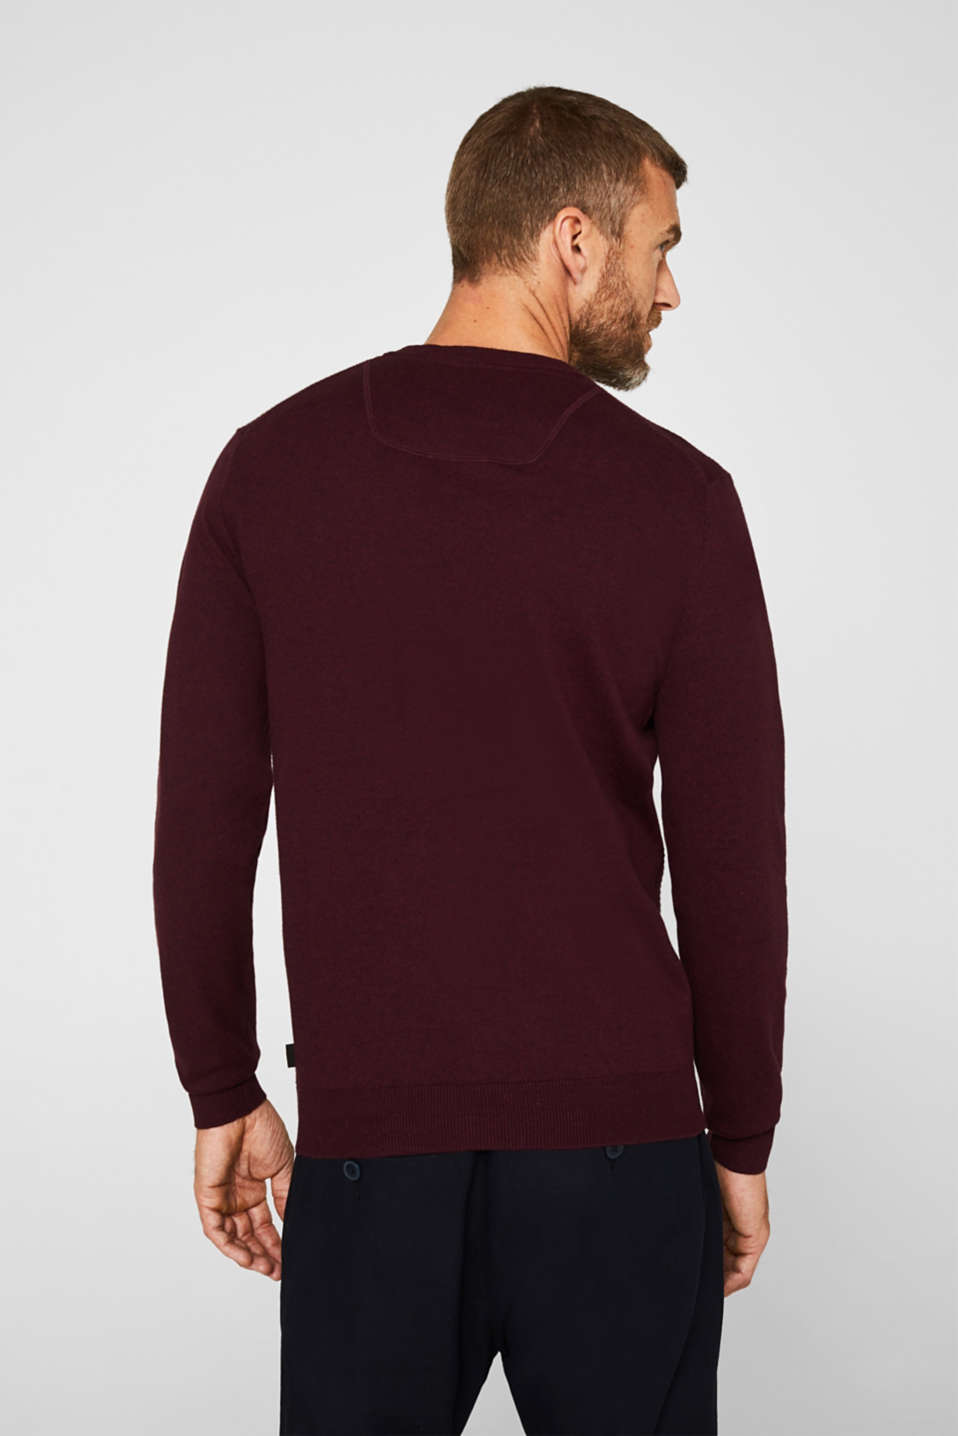 Cashmere blend: textured knit jumper, BORDEAUX RED 5, detail image number 3